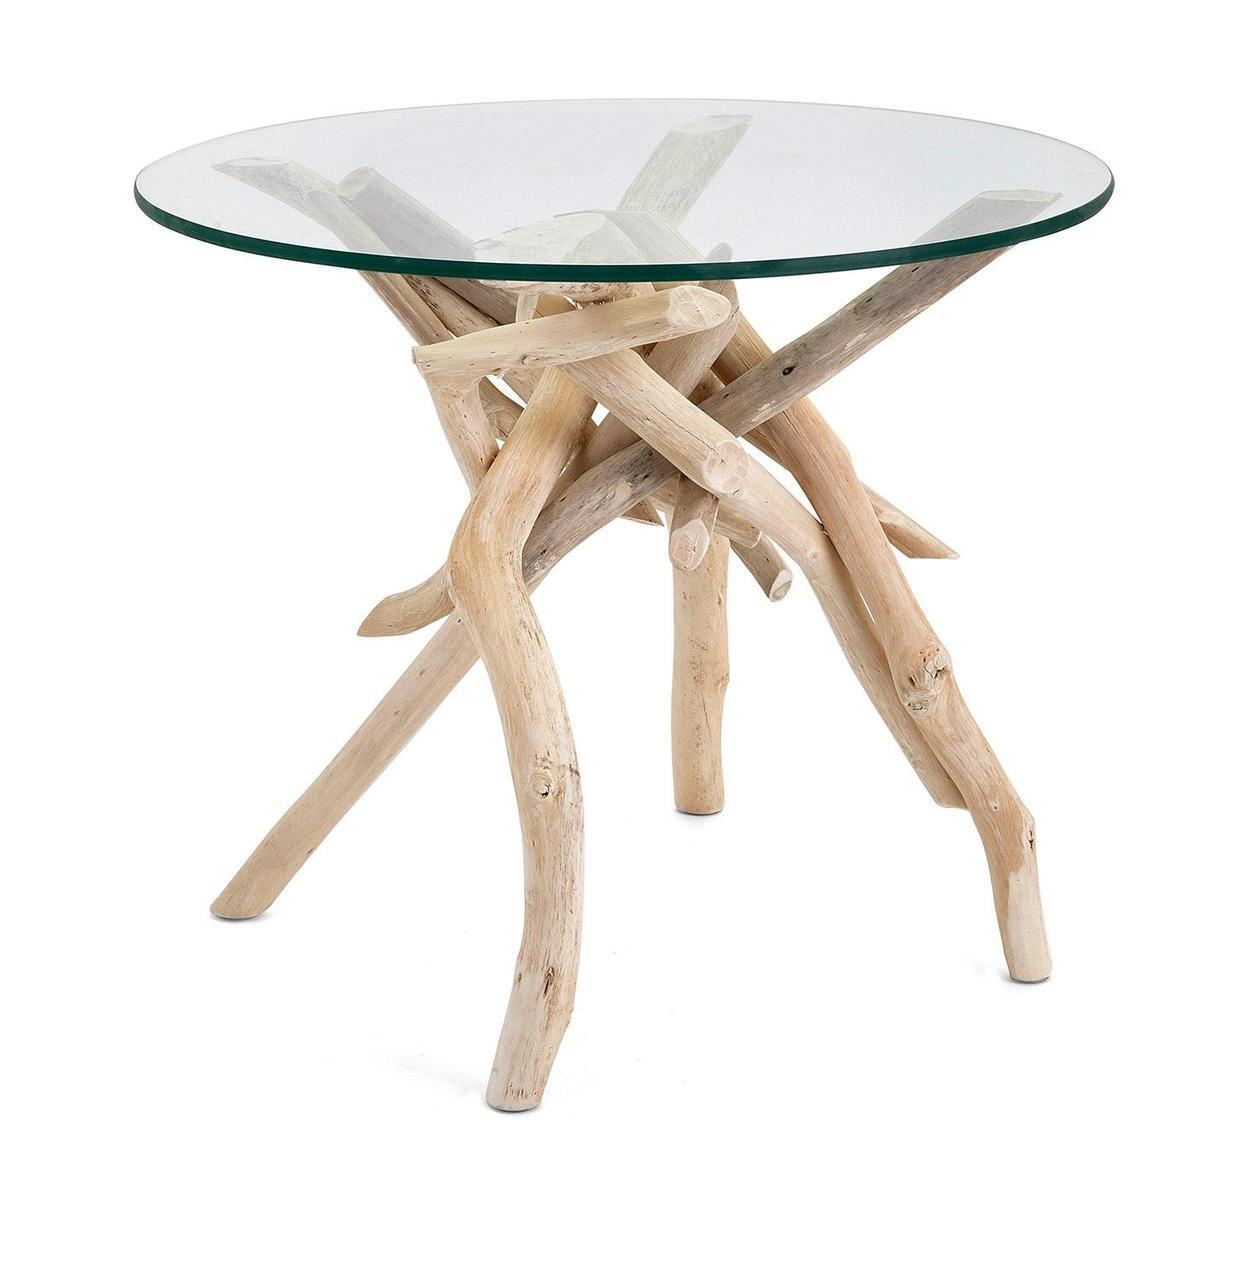 decorative driftwood legs with glass top accent table large coffee black occasional modern lamps for bedroom small white corner desk sofa covers walnut bedside inch bathroom